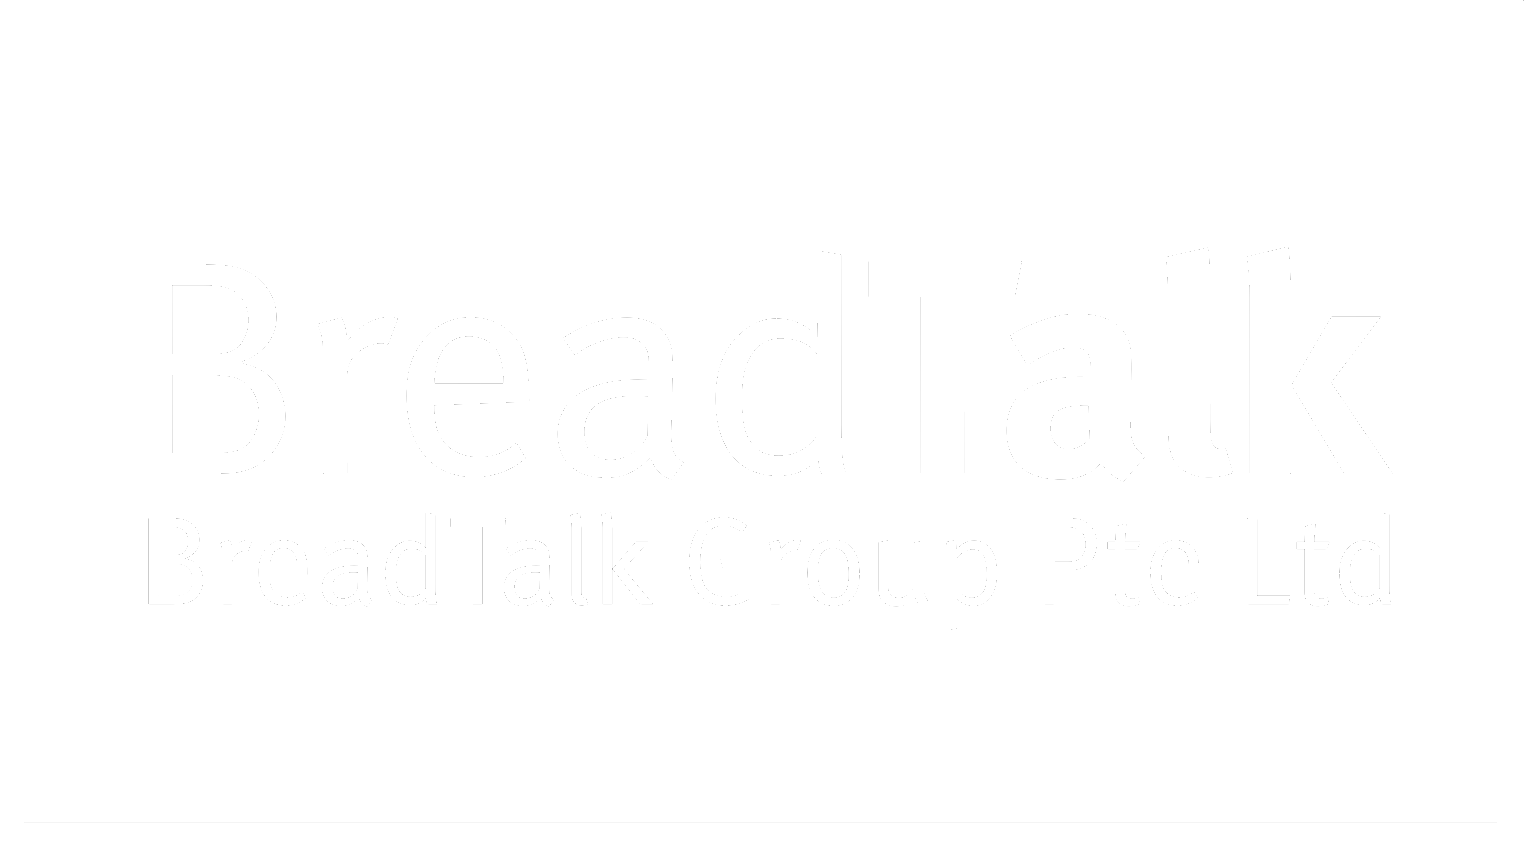 BreadTalk Group